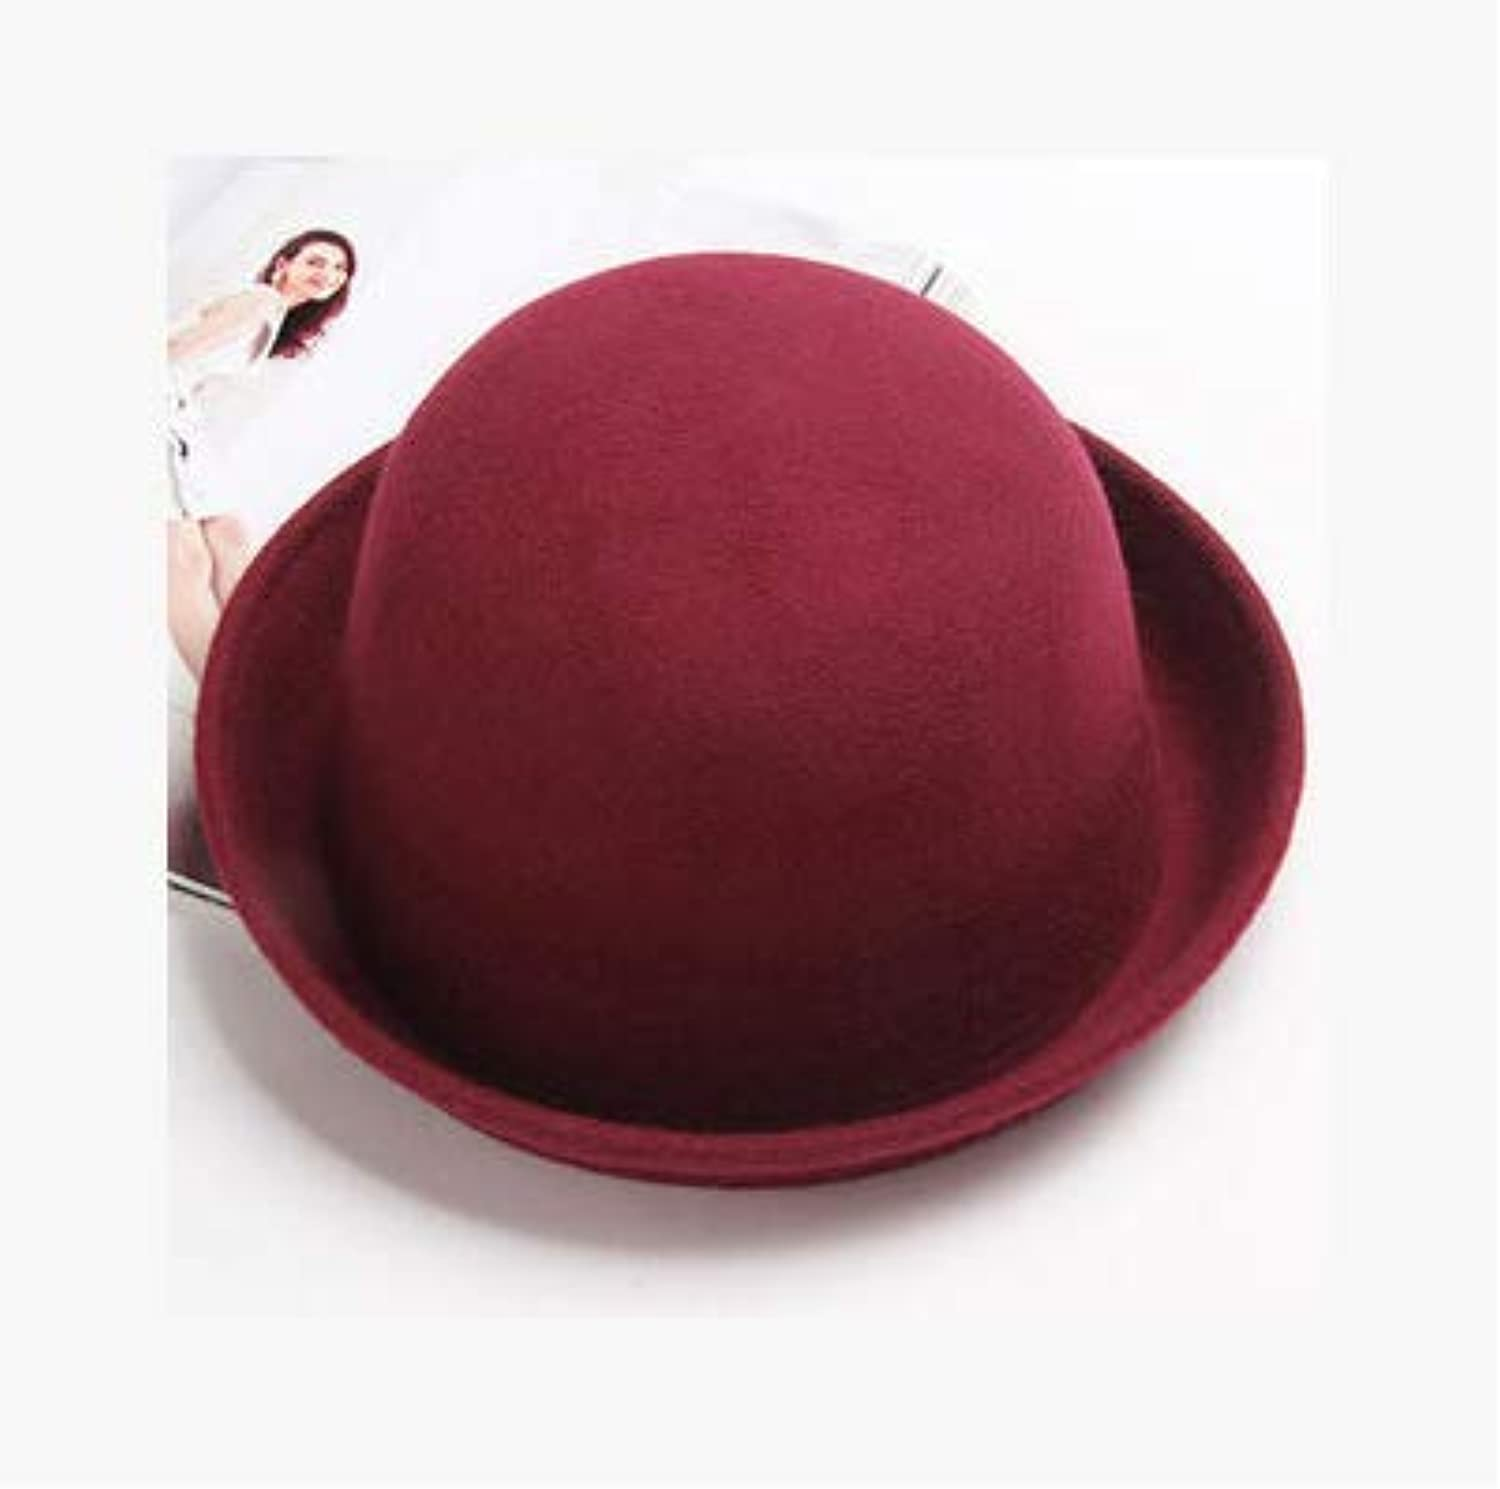 Home British Spring hat Ladies Outdoor Winter Woolen hat Fashion Curling Small hat Export (color   Wine red) Warm Soft and Comfortable Hats